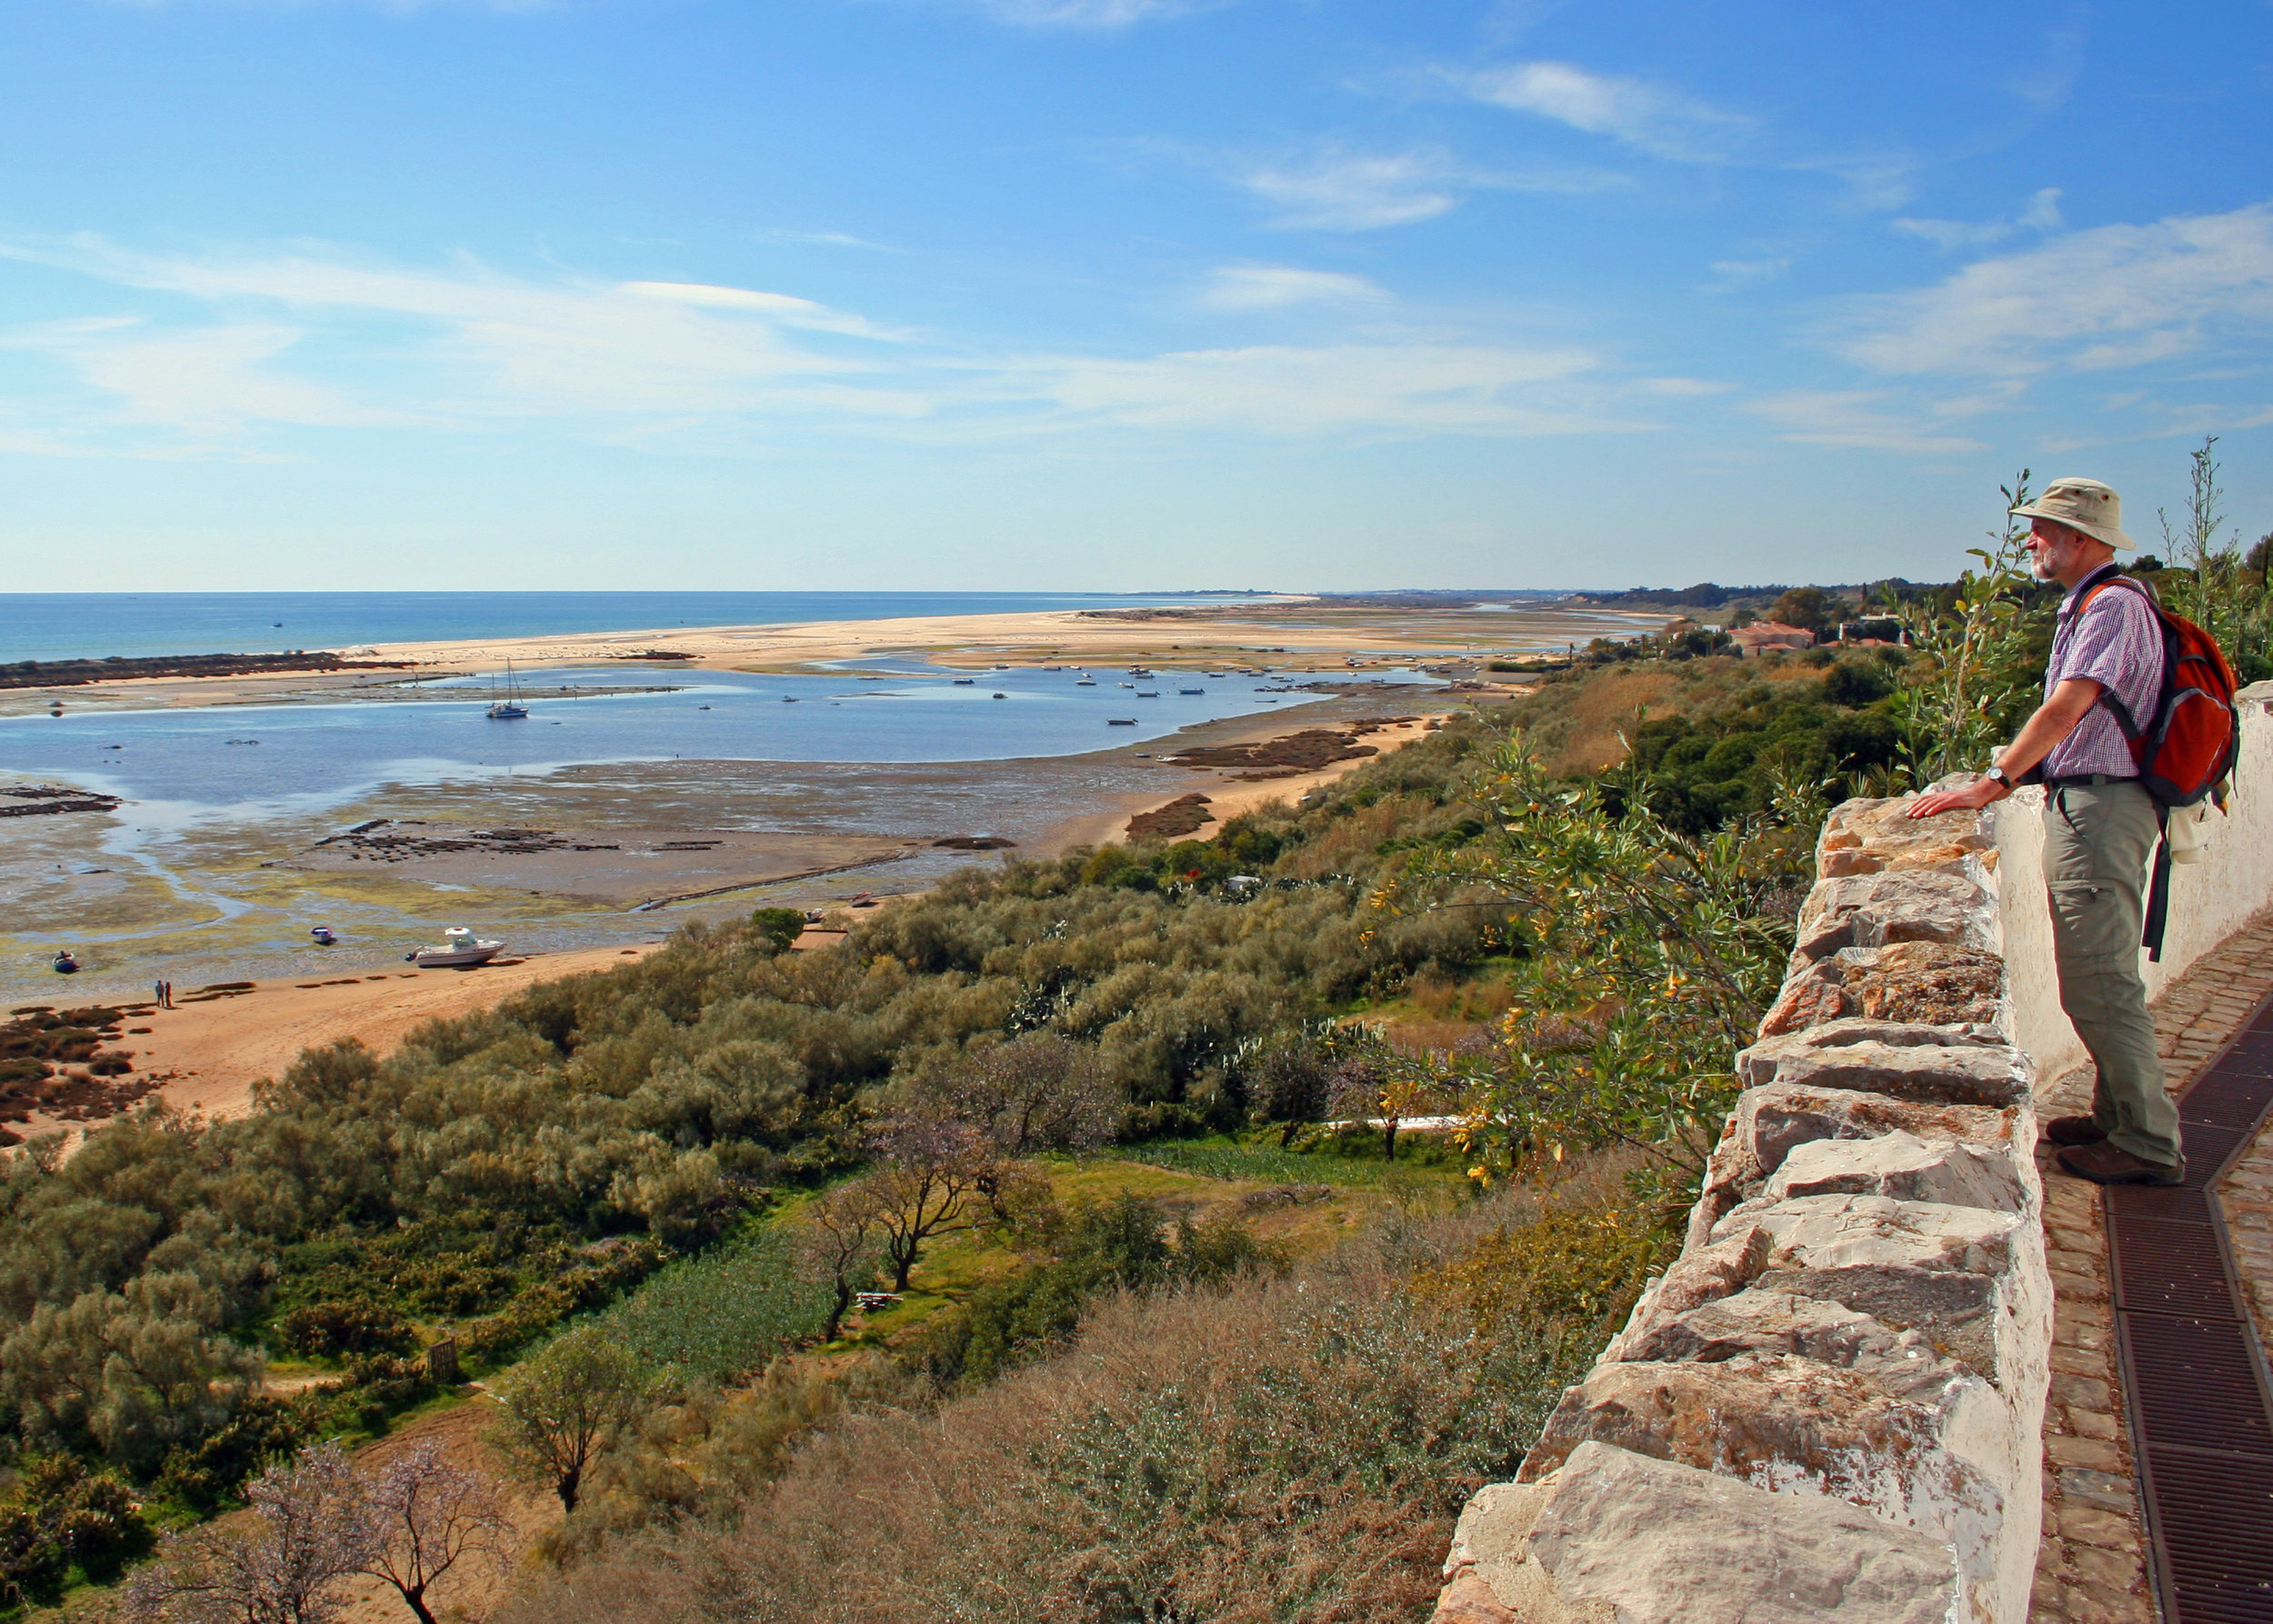 Tavira: Pearl of the Algarve - The Algarve has many charms and is ideal for easy walking holidays in Portugal. We stay in a hotel idyllically located in Tavira, one of the most attractive towns in the Algarve.21 - 28 October 2018 from £1,095 per person.